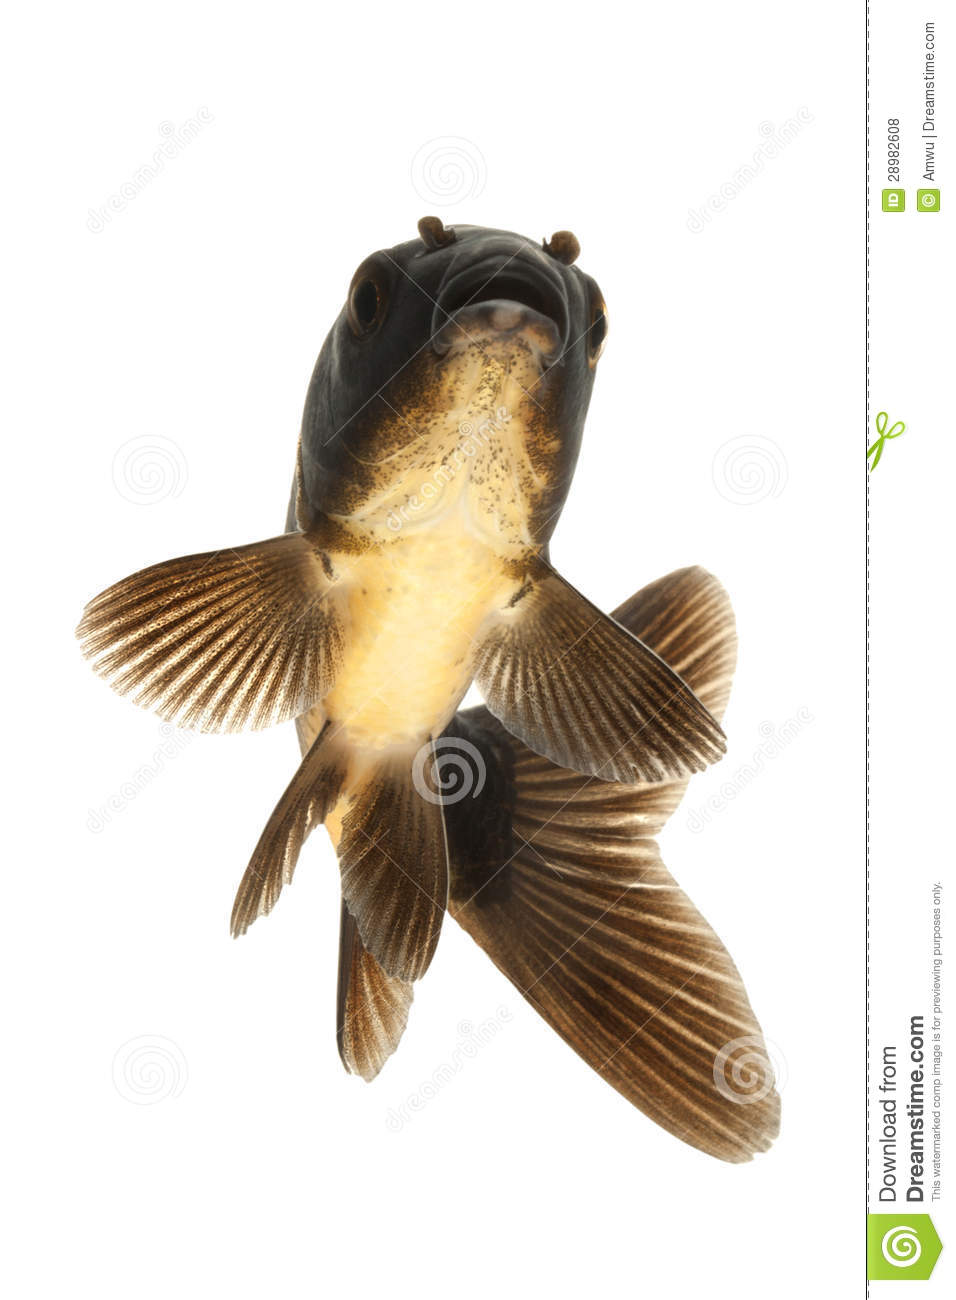 Black koi fish royalty free stock photos image 28982608 for All black koi fish